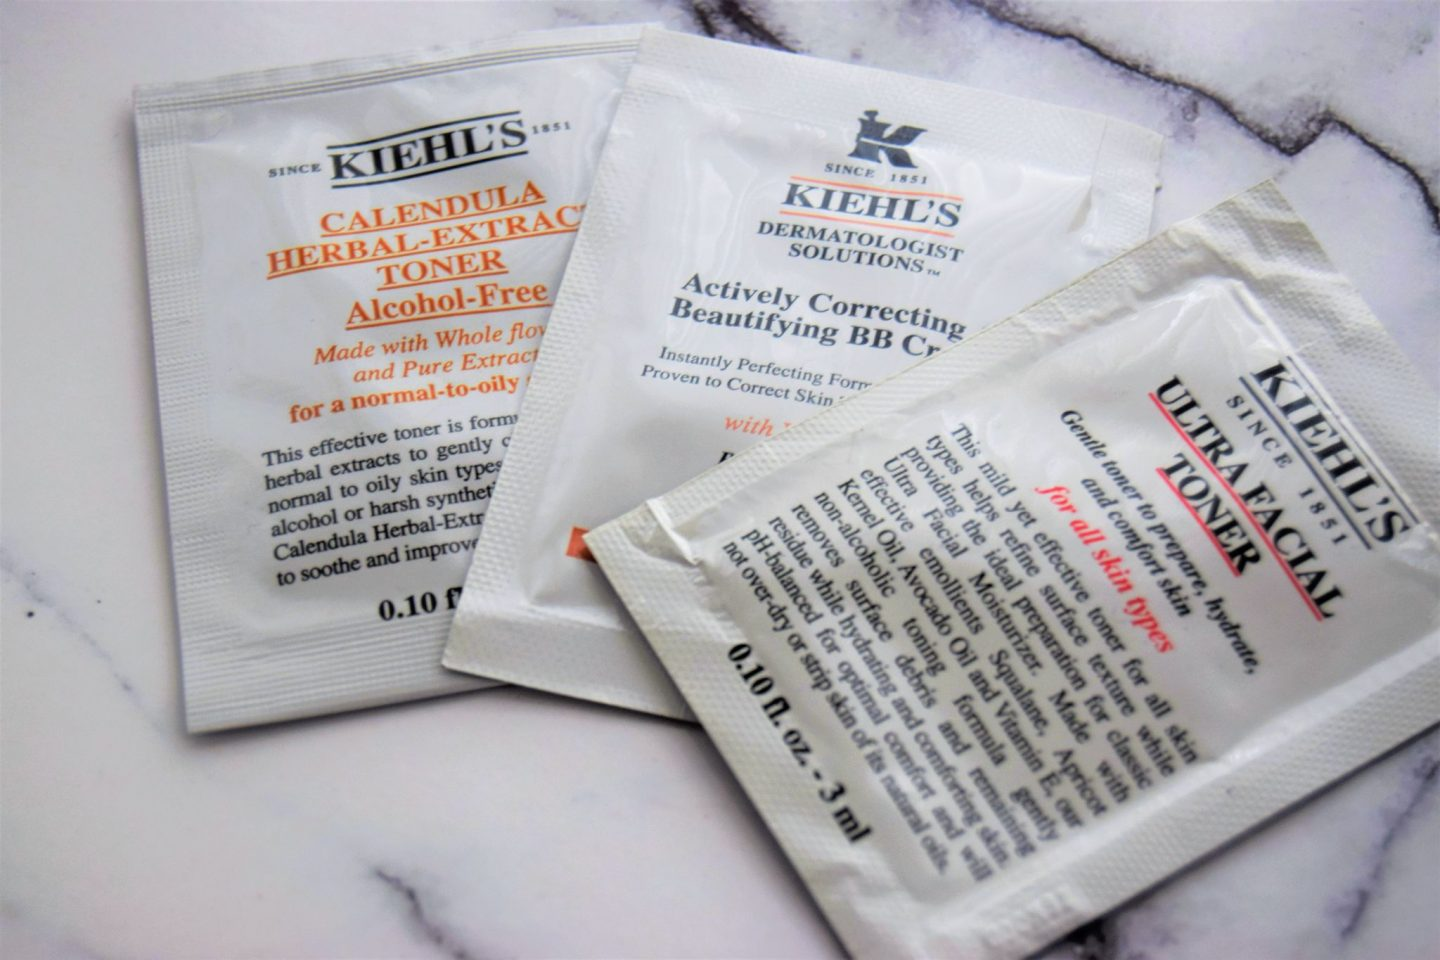 An Evening with Kiehl's